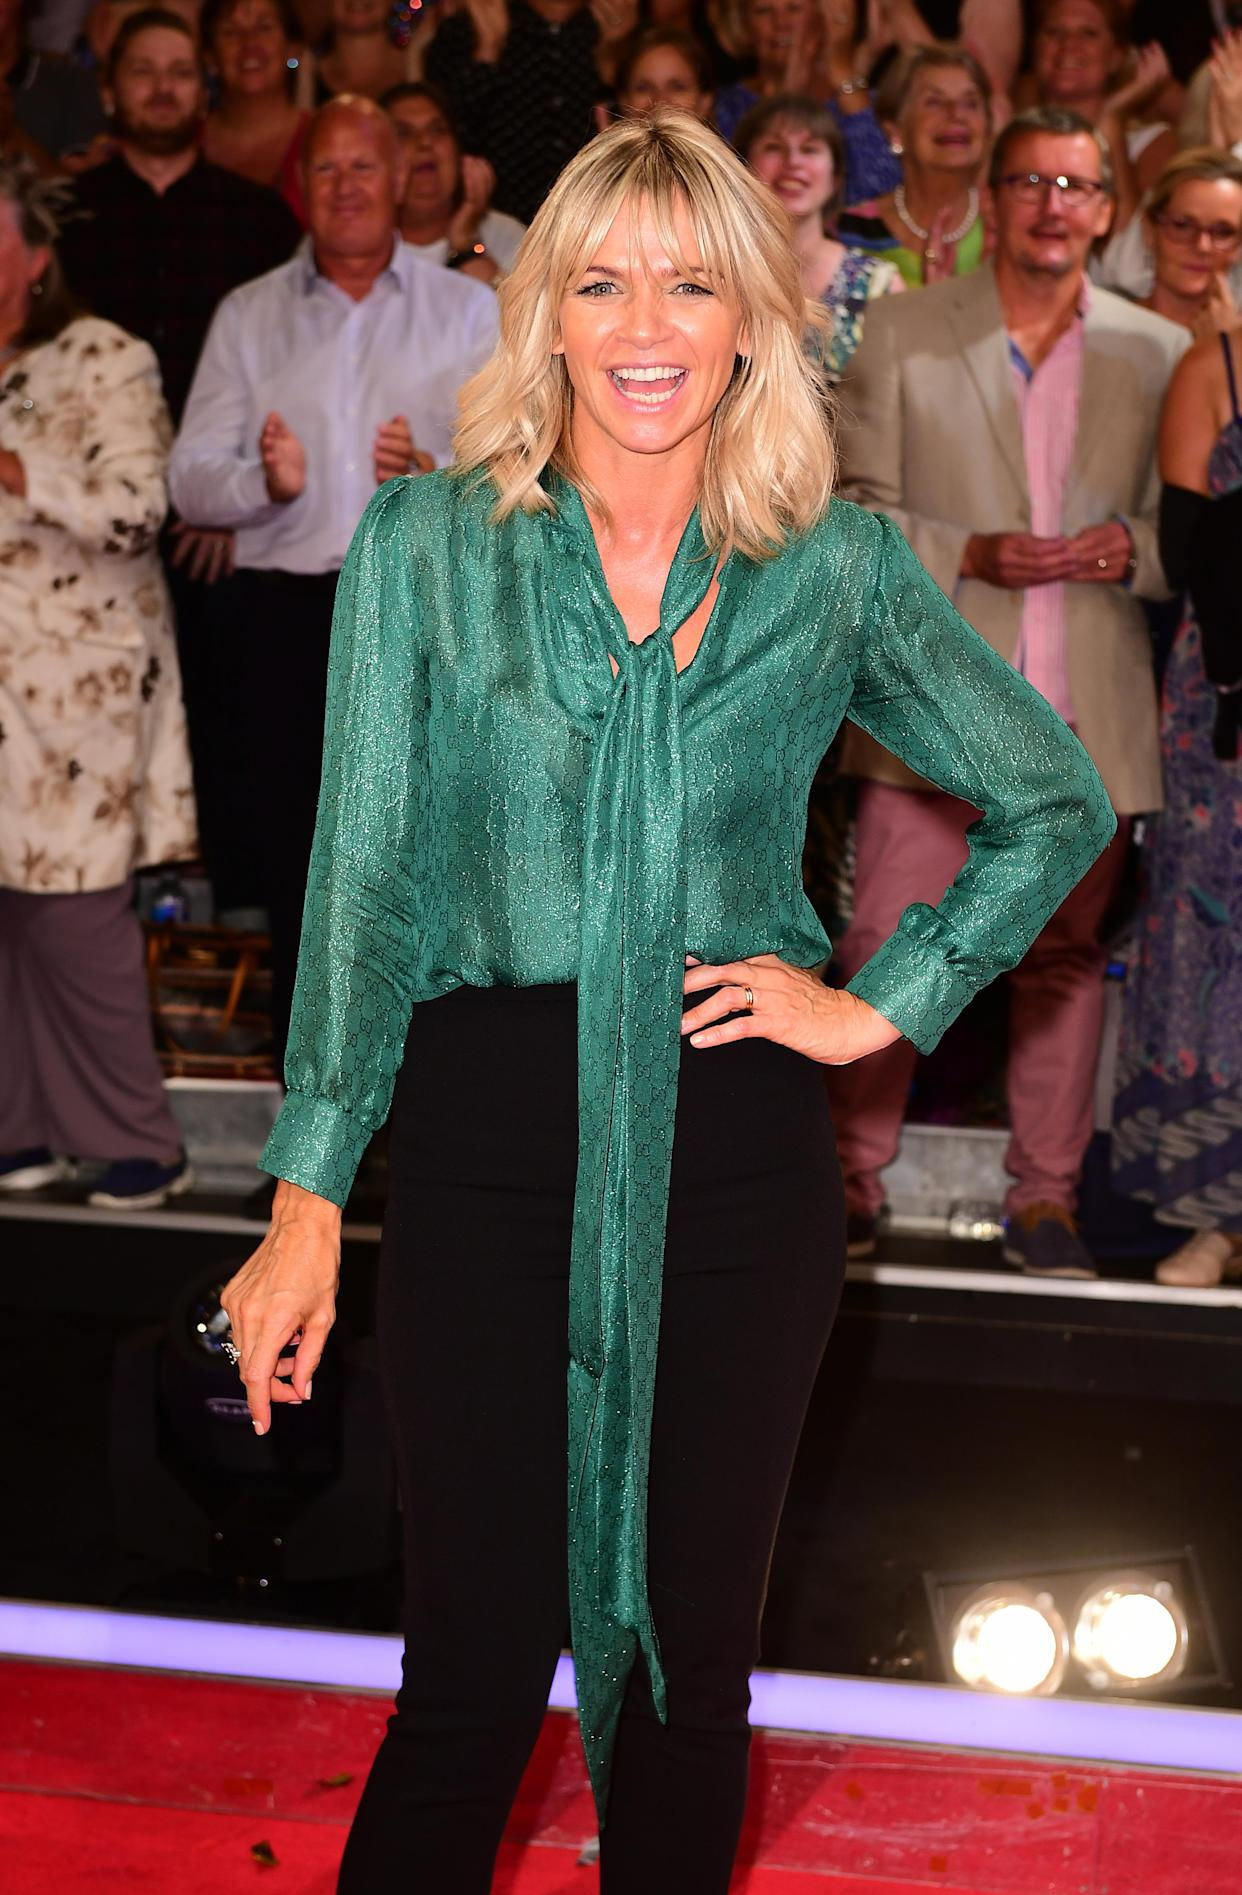 Zoe Ball at the launch of Strictly Come Dancing 2016 at Elstree Studios in Hertfordshire. Picture date: Tuesday 30th August, 2016. See PA story SHOWBIZ Strictly. Photo credit should read: Ian West/PA Wire.